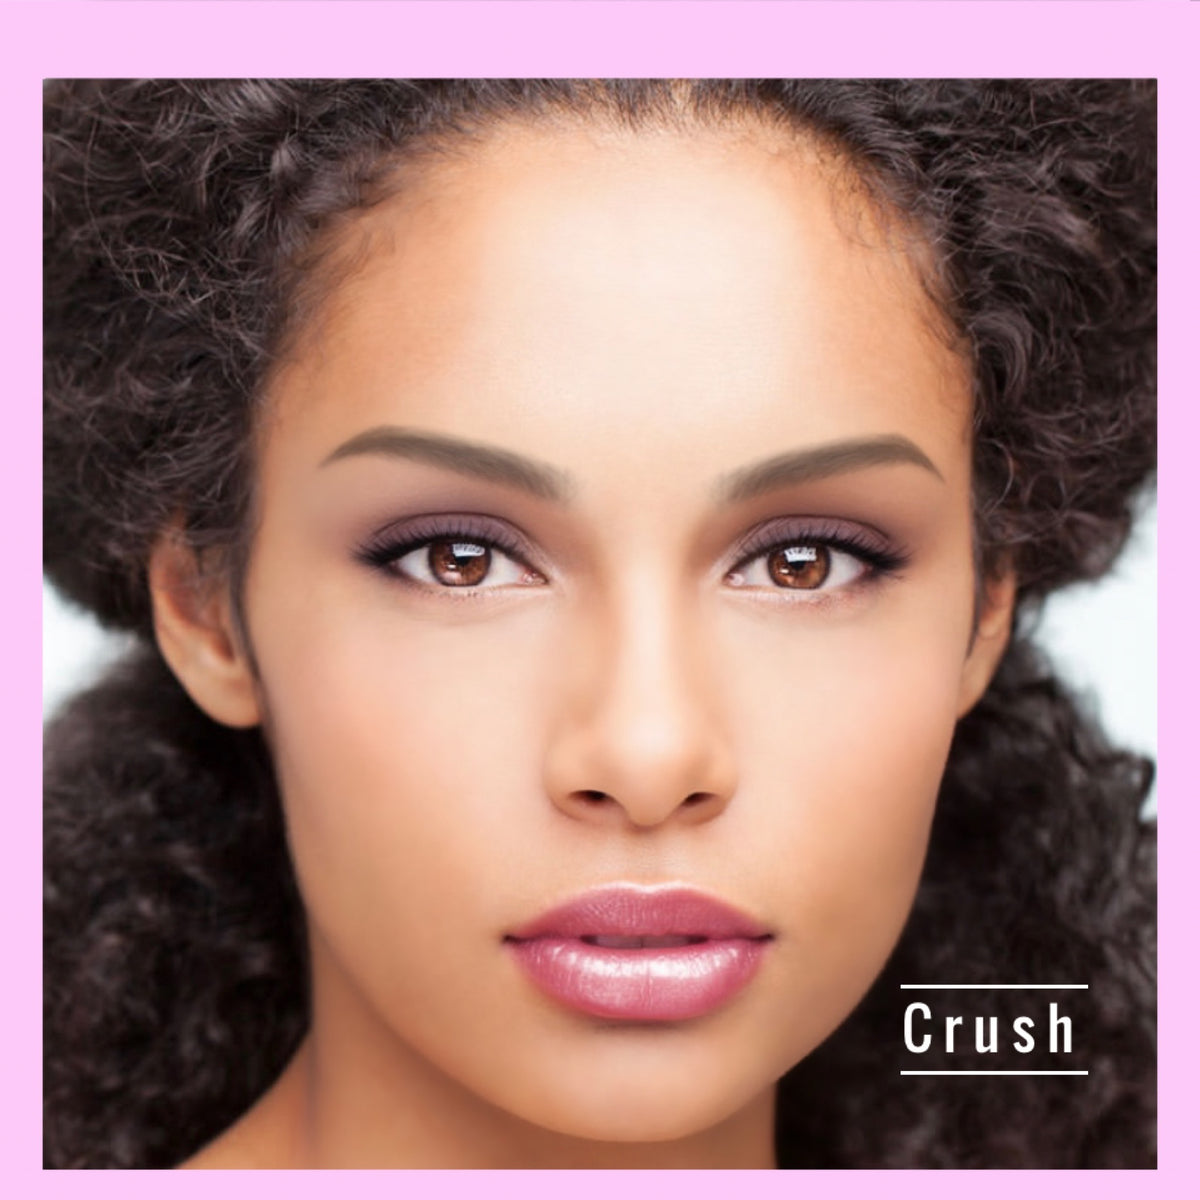 Crush Lipstick Color - lexinoelbeauty.com